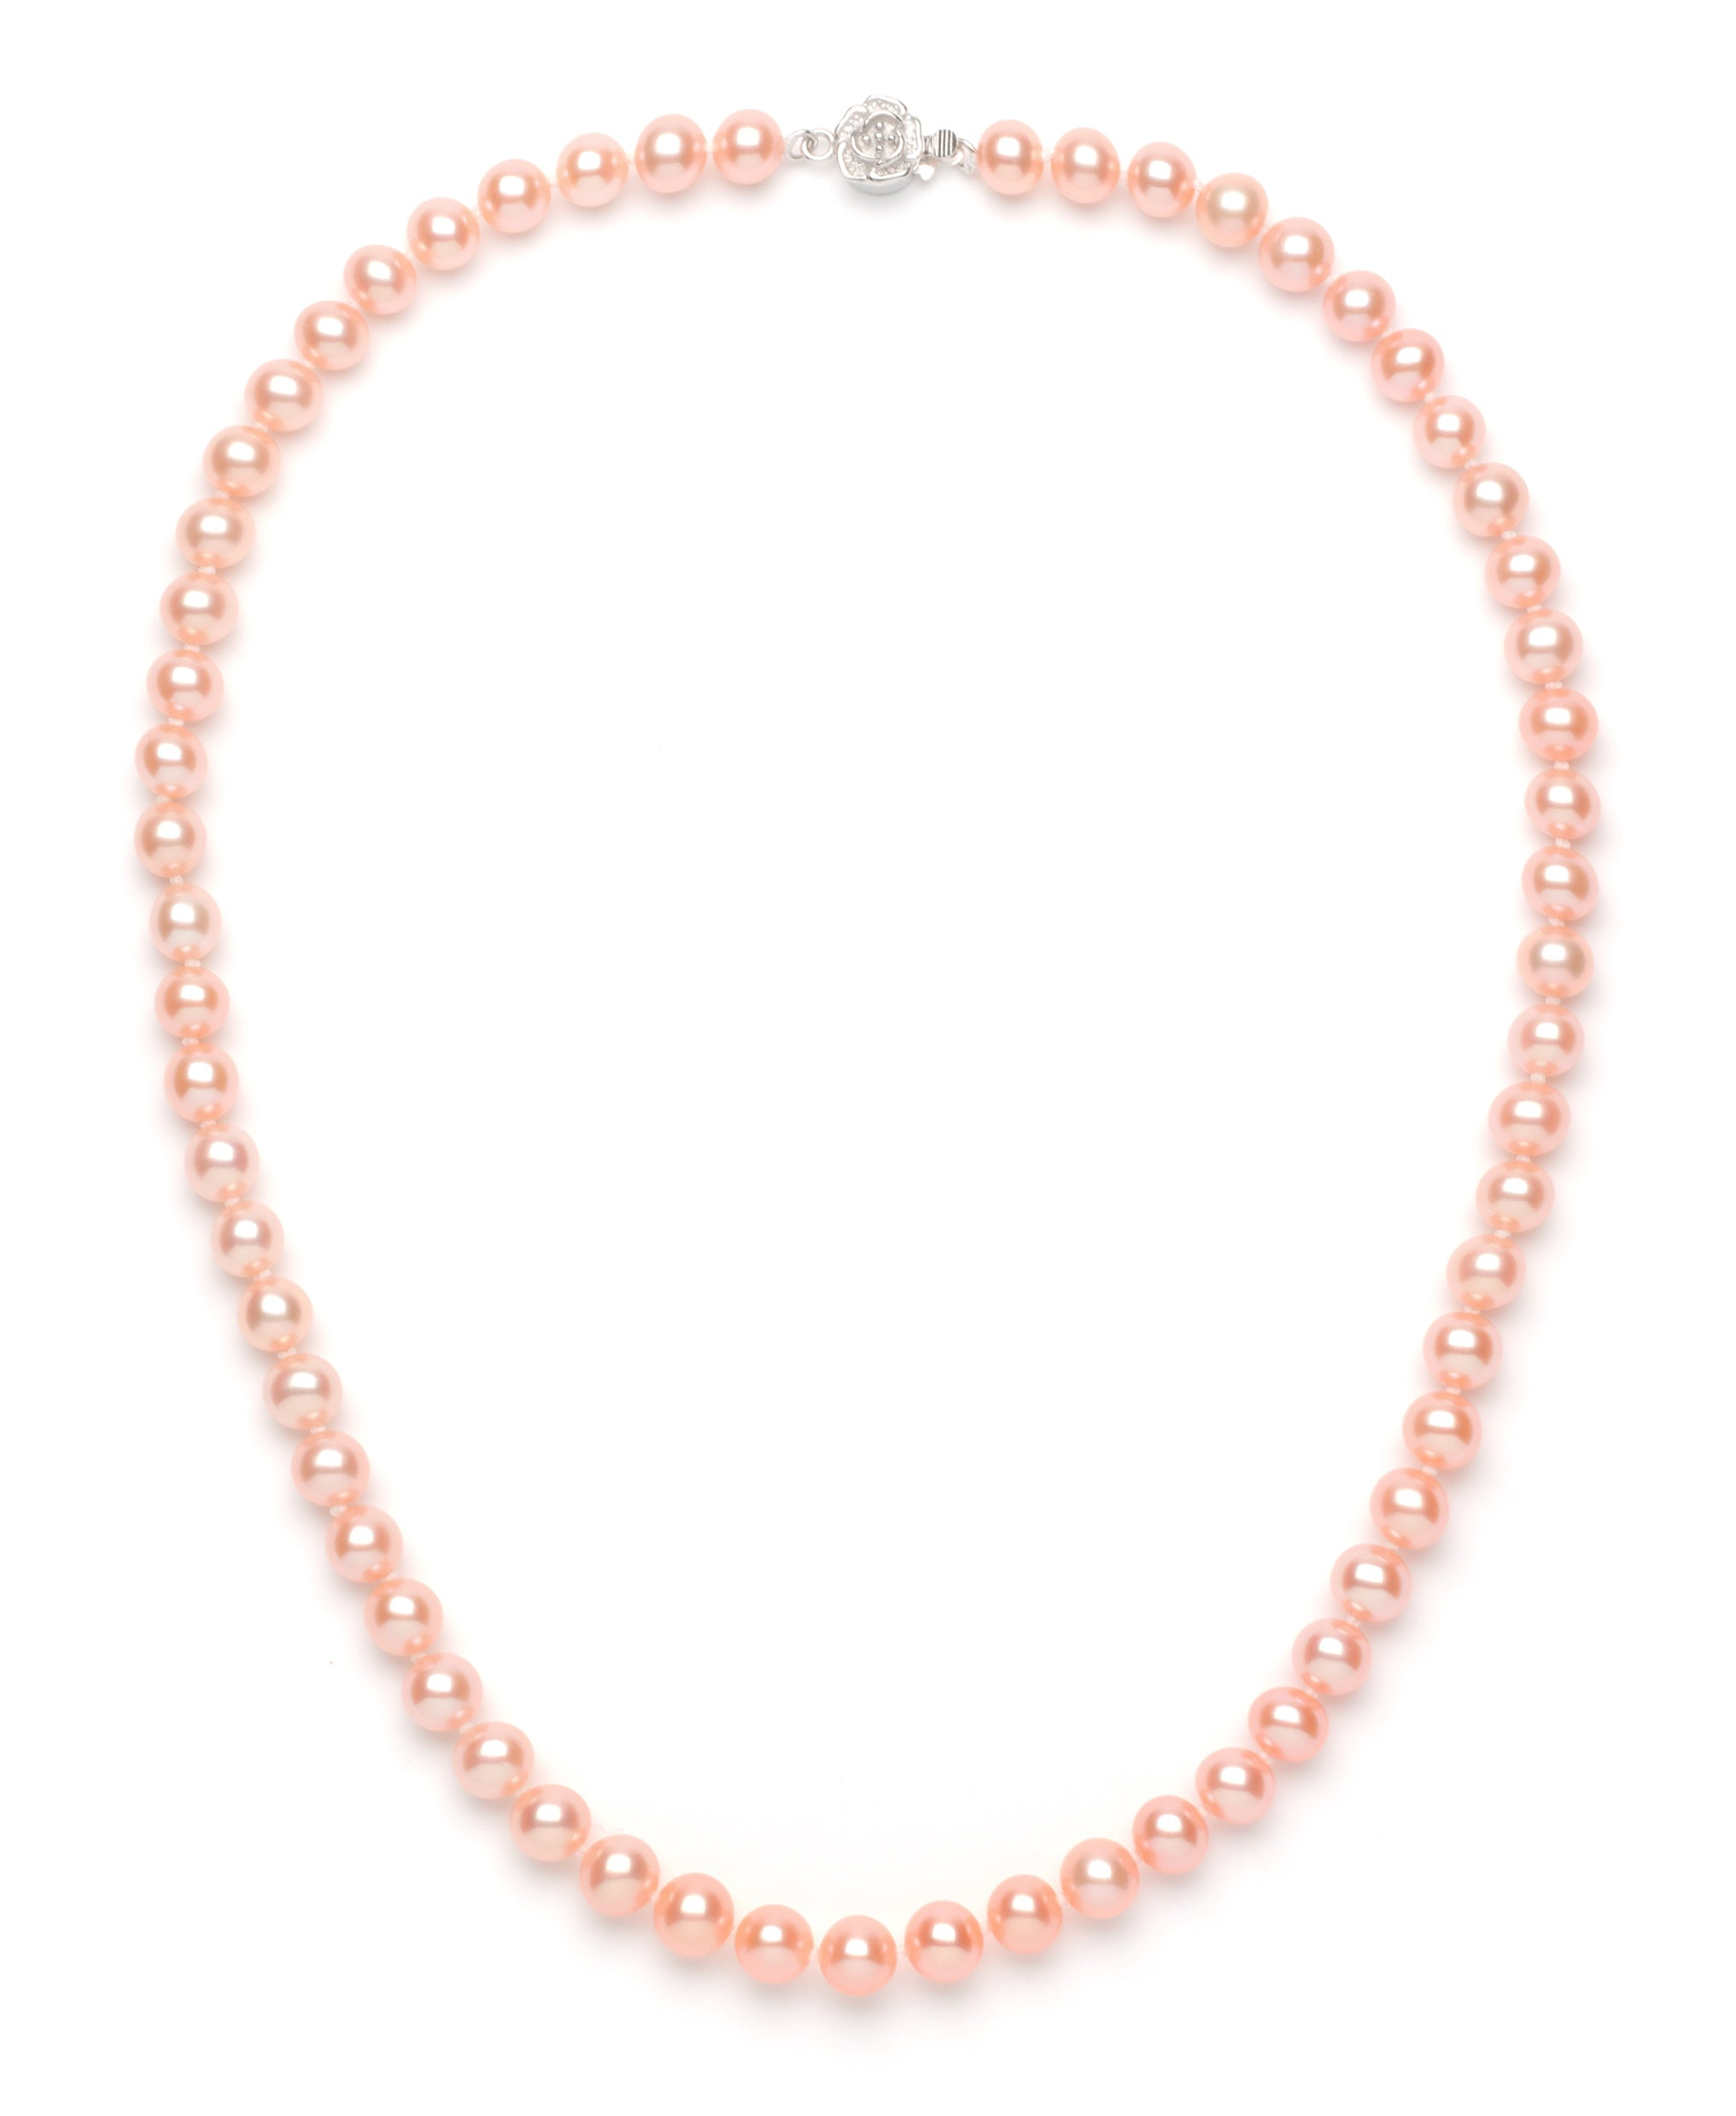 7.0-8.0 mm Pink Freshwater Pearl Necklace